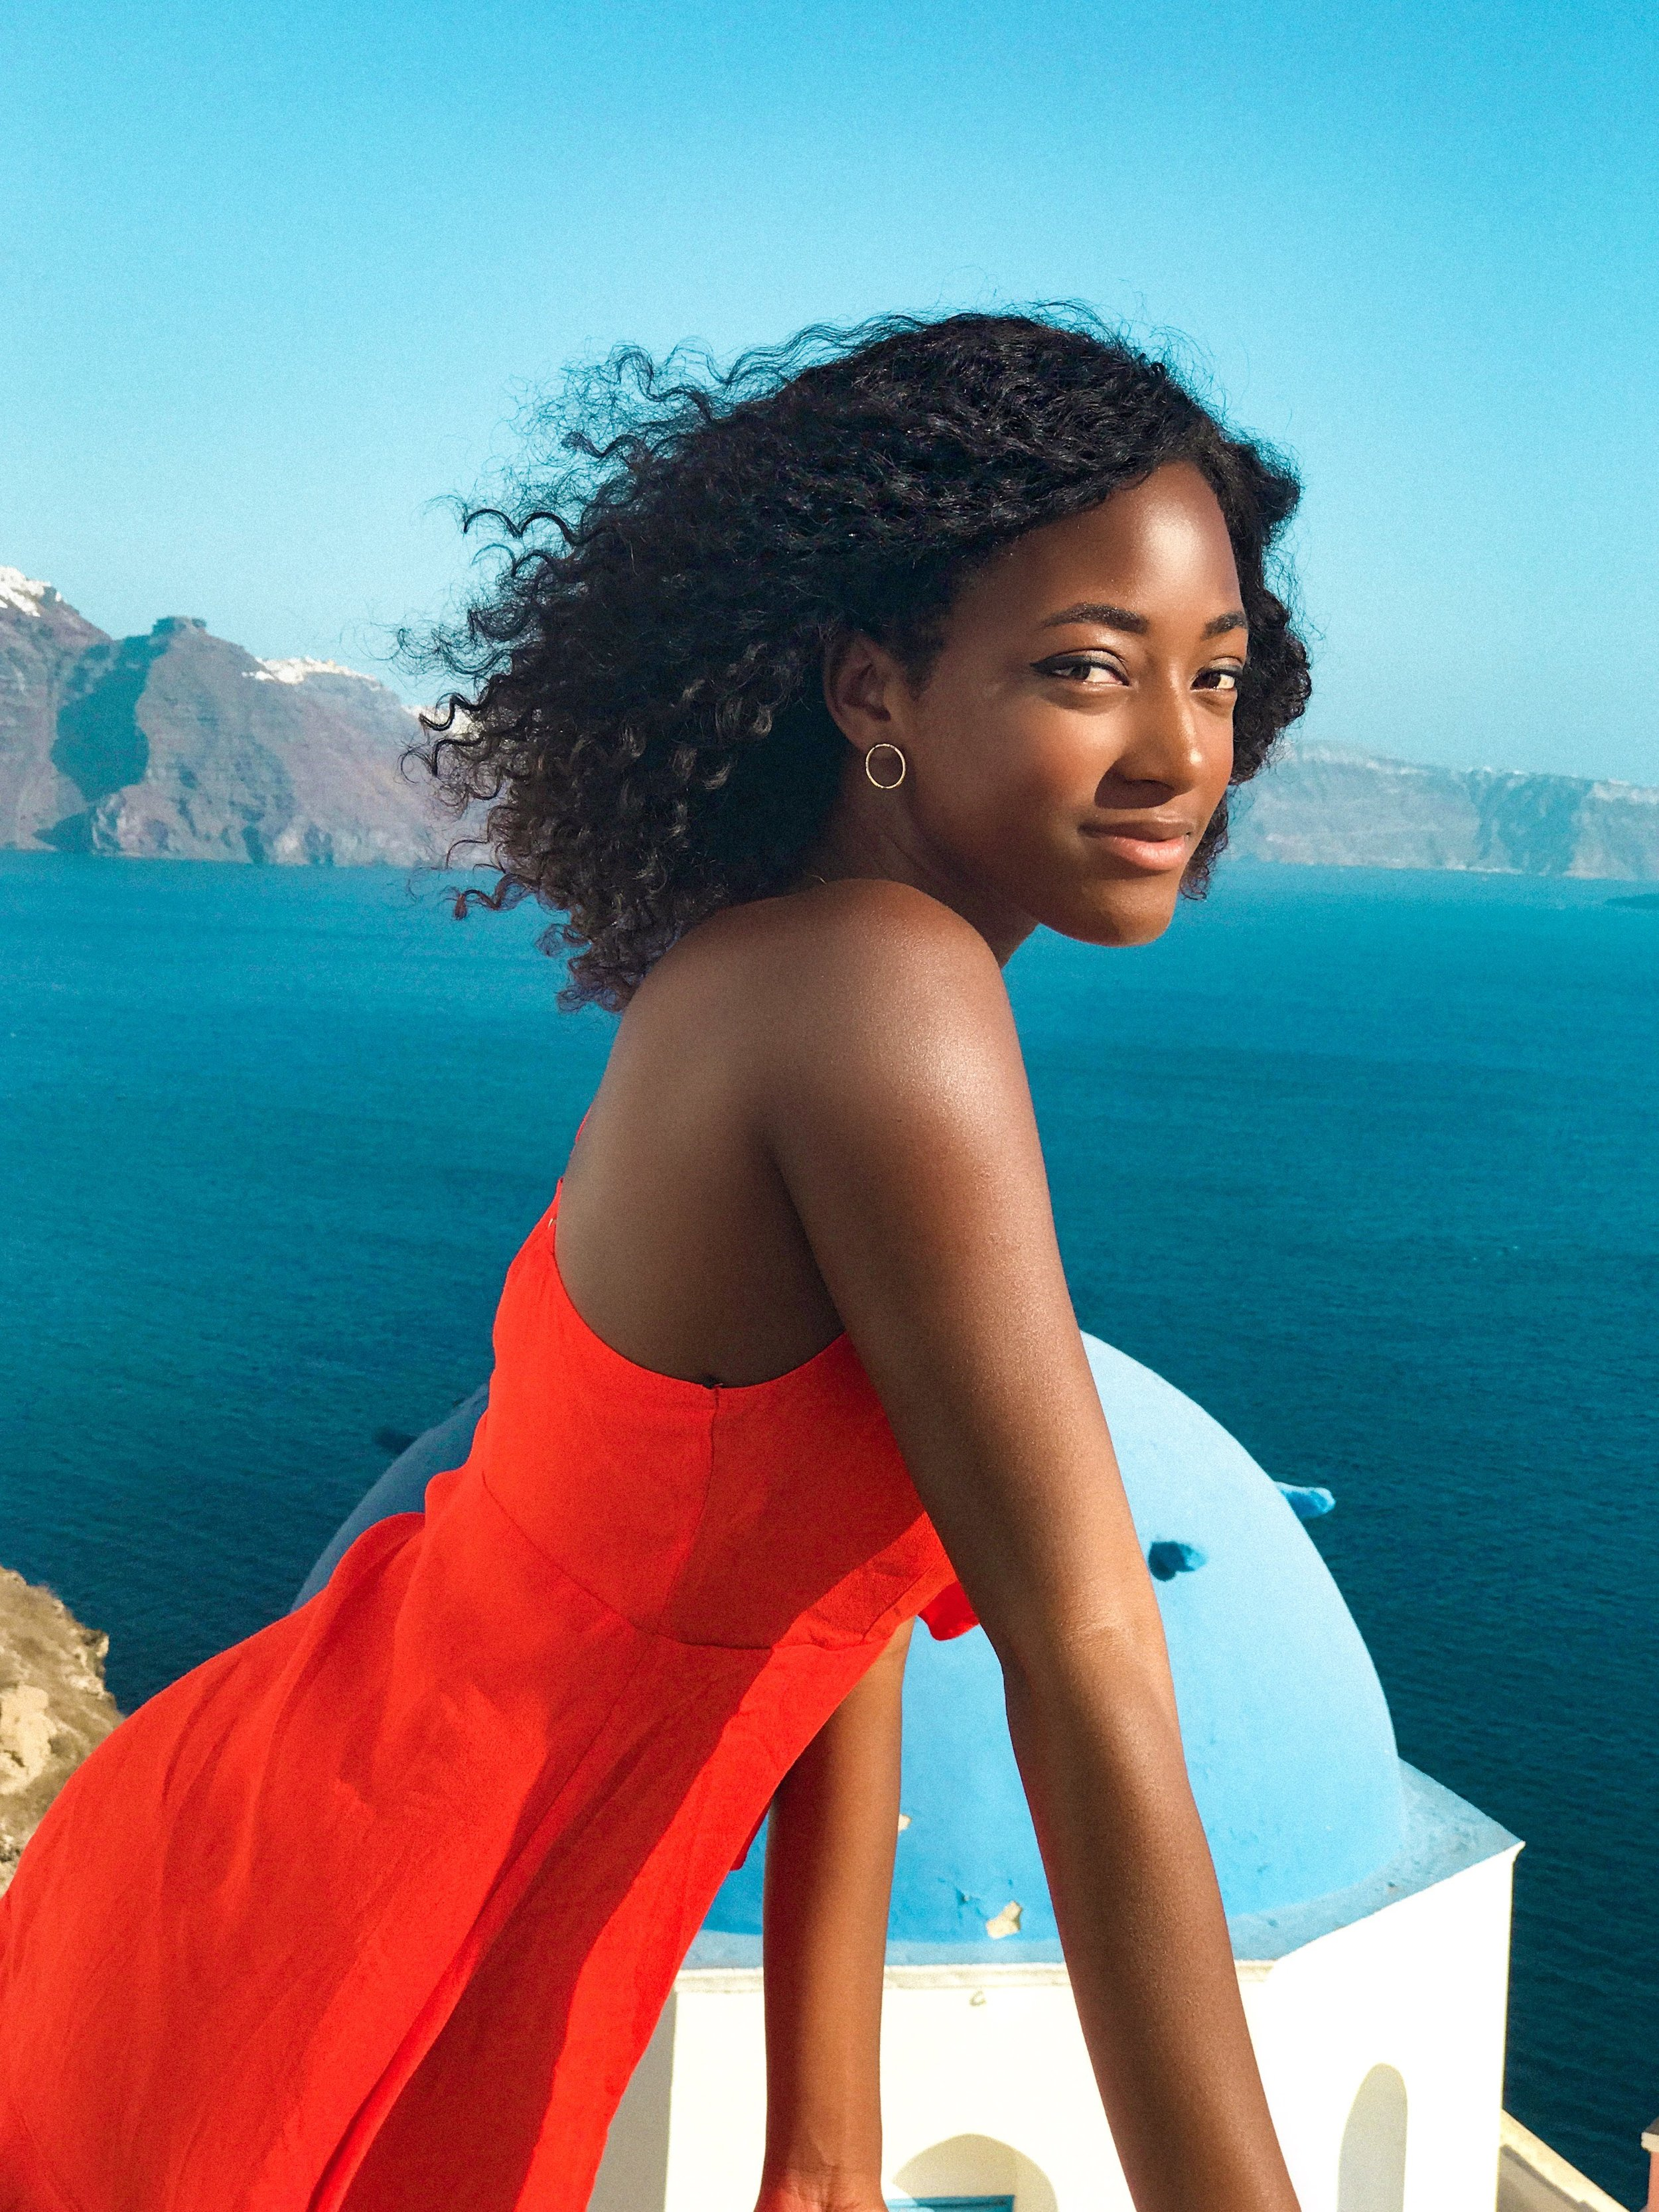 Believe it or not, a solo female traveler approached me to take a photo of her in Santorini. We were able to help each other out and we really clicked. This is one of the photos she took(with an iPhone) and it's one of my favorites. We ended up eating dinner together and she met up with me in San Francisco a year later so that we could reunite.